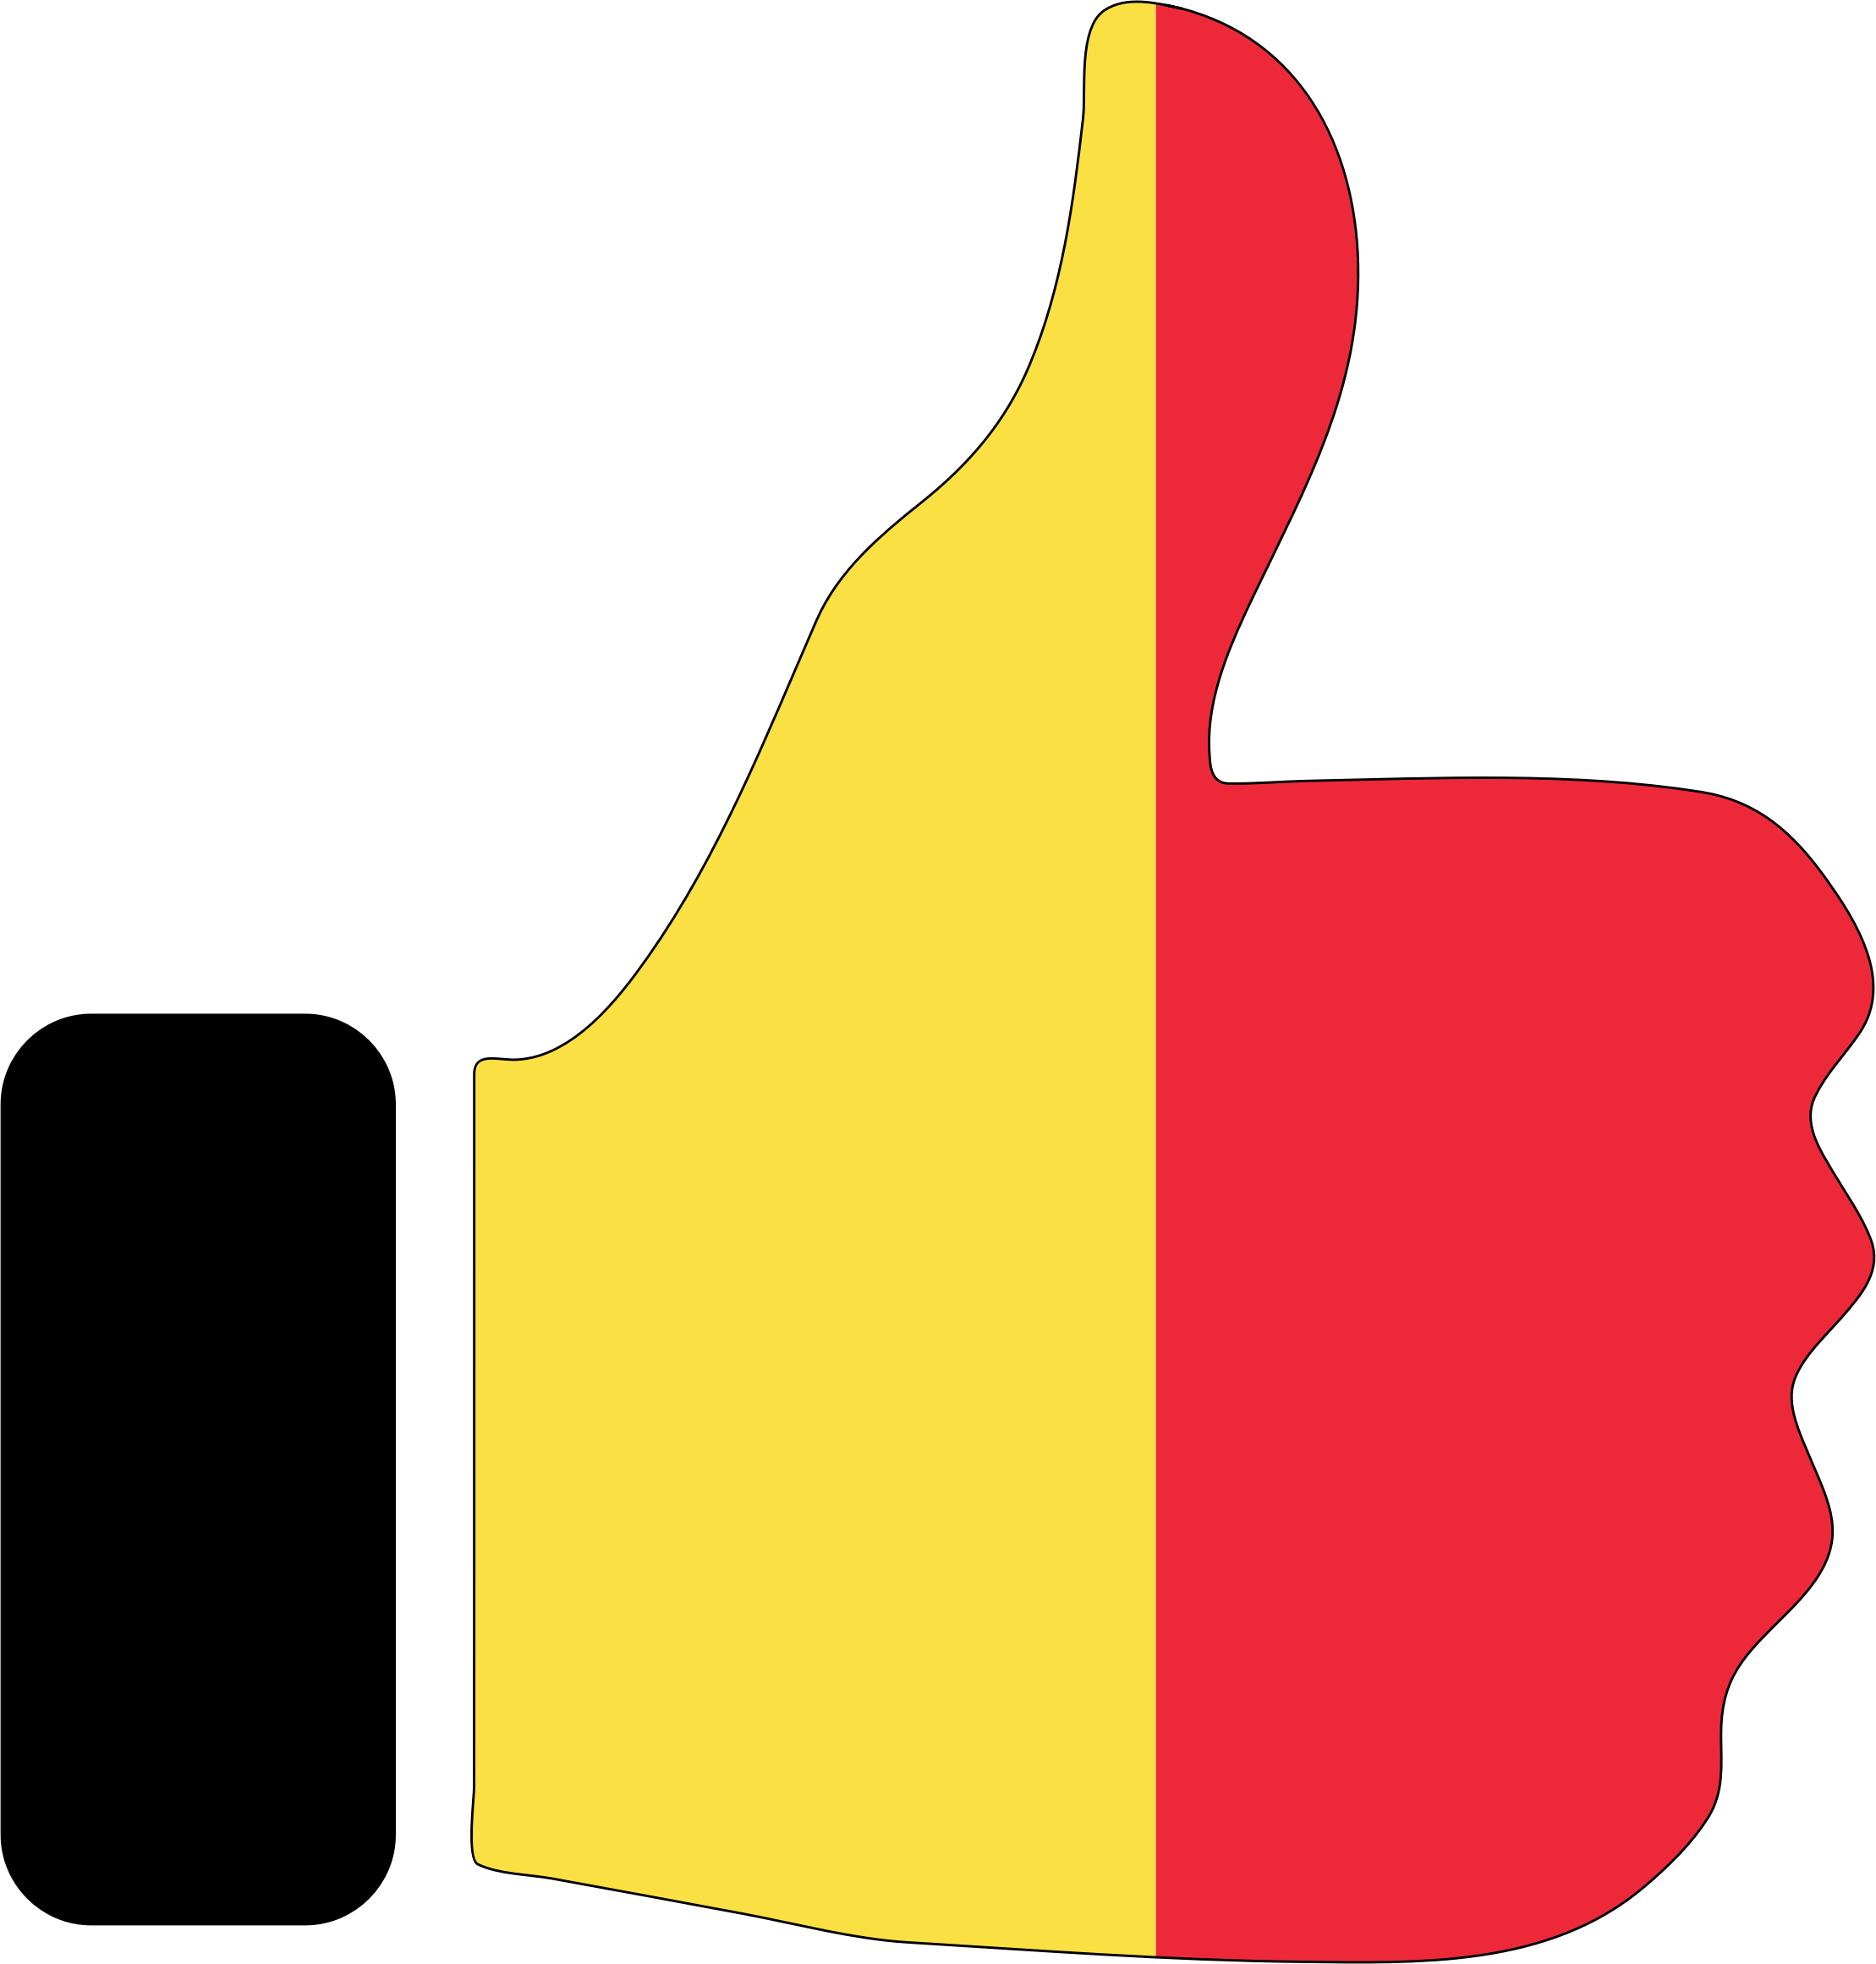 Thumbs Up Belgium With Stroke by GDJ